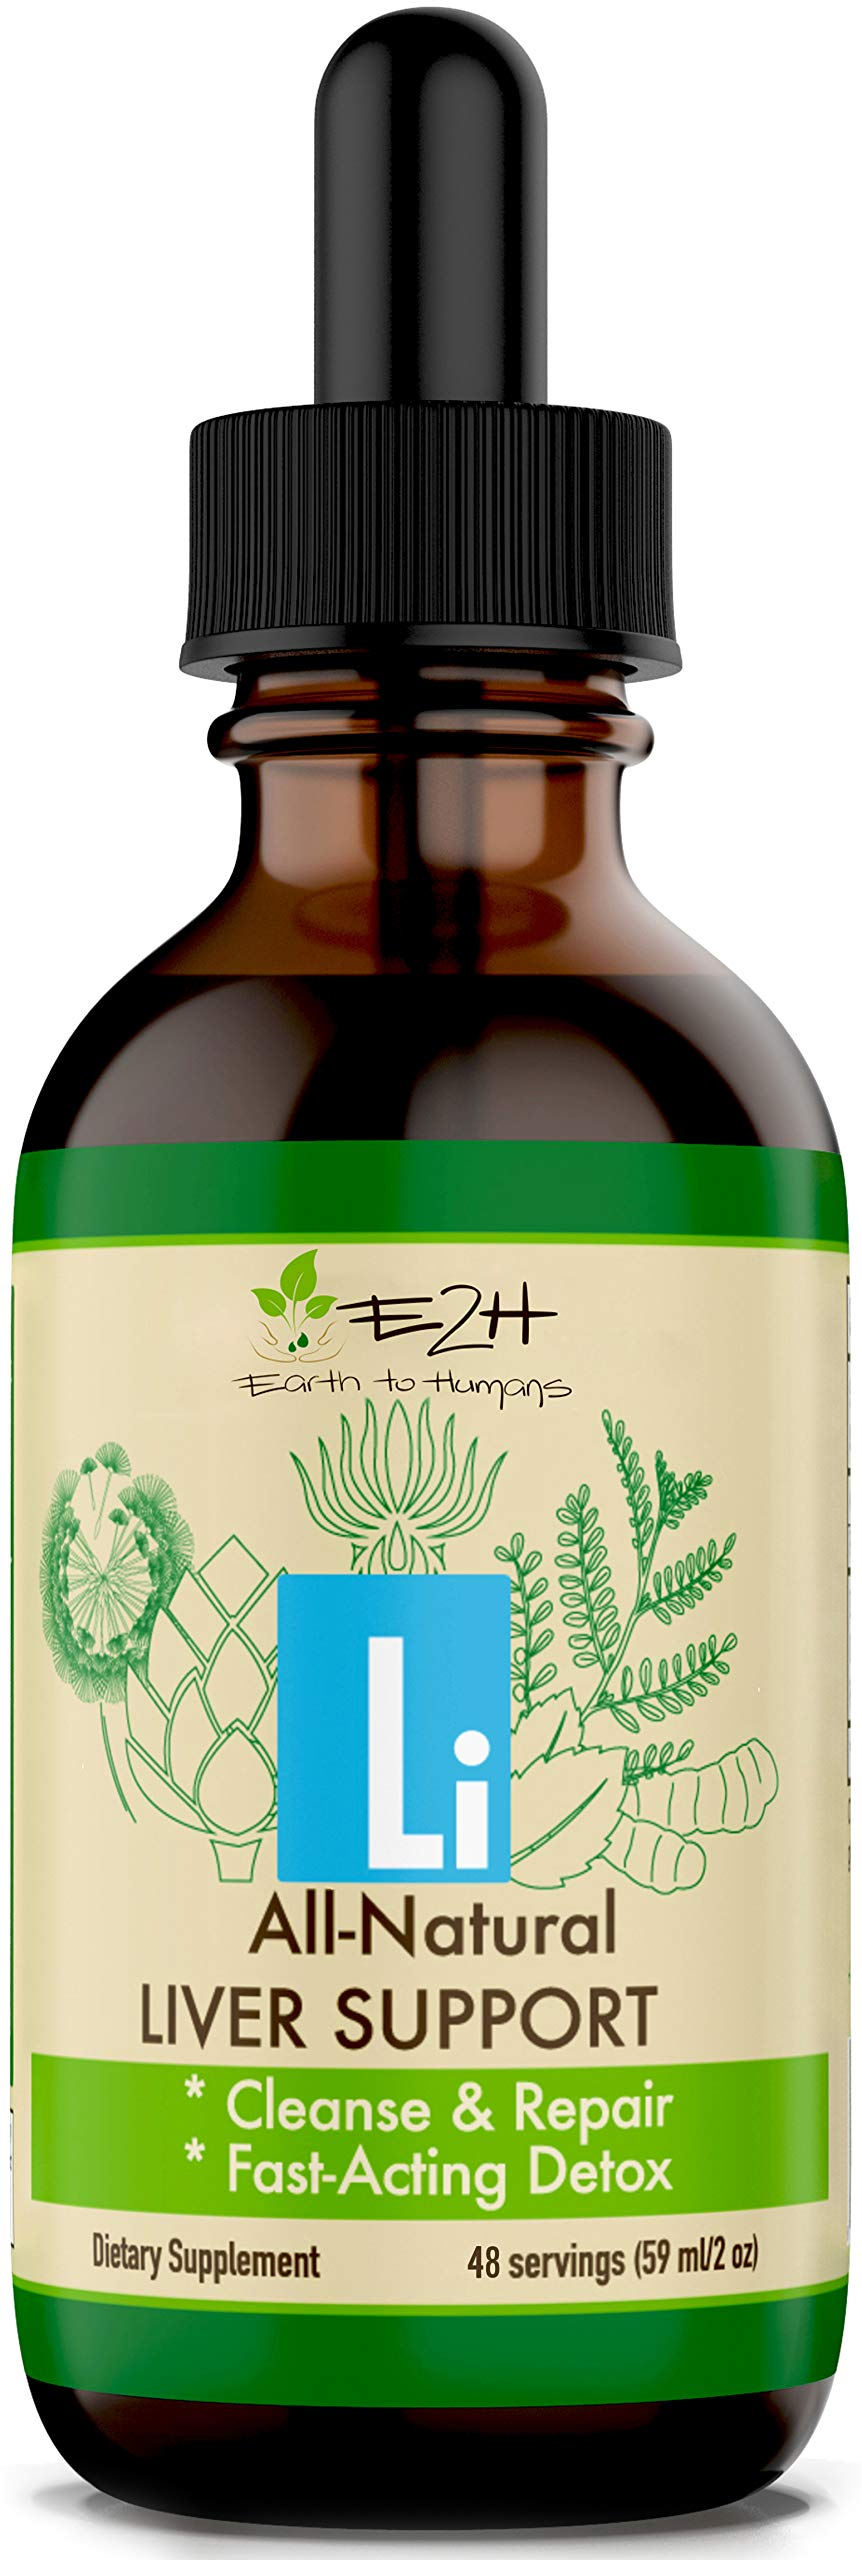 Gentle Liver Cleanse and Detox - All-Natural Liver Support Supplement - Revitalize Your Liver and Your Health - Highly Absorbent Liquid Formula with Milk Thistle, Chanca Piedra - 48 Servings by E2H EARTH TO HUMANS